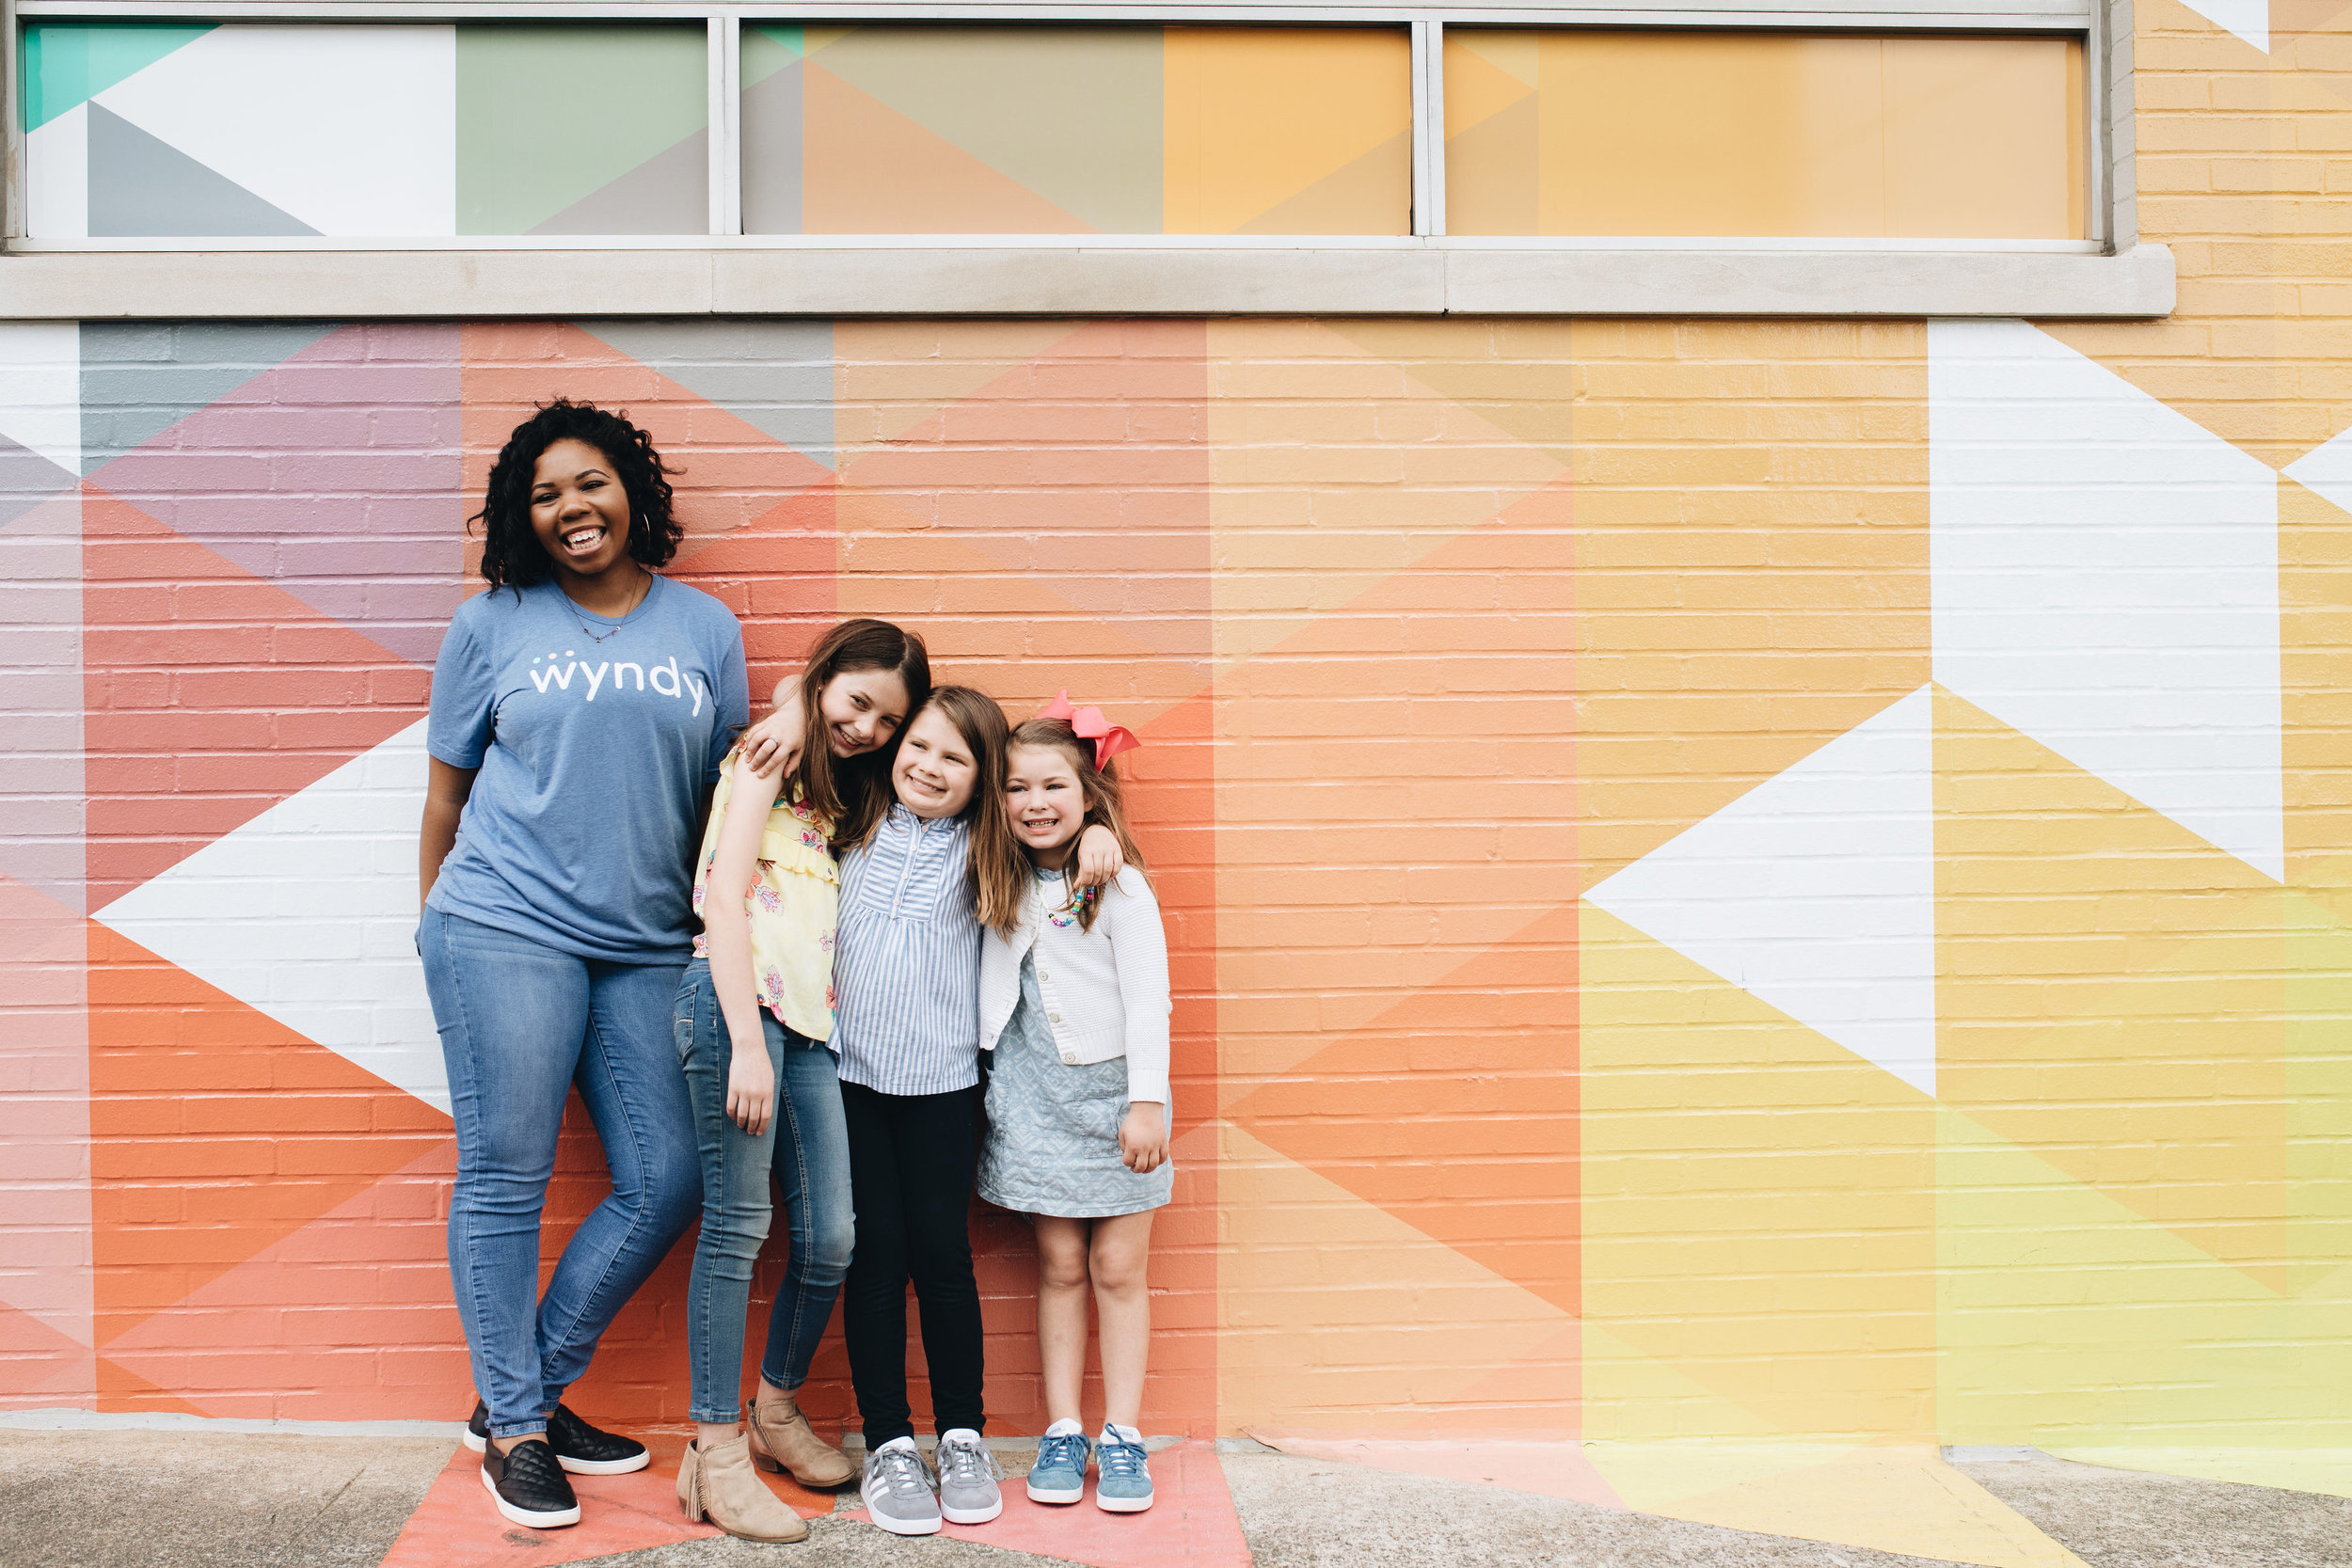 Wyndy makes it easy to get background-checked college babysitters in Columbia, South Carolina - More than 12,000 families in Atlanta, New Orleans, Nashville, Birmingham, and Memphis trust Wyndy.